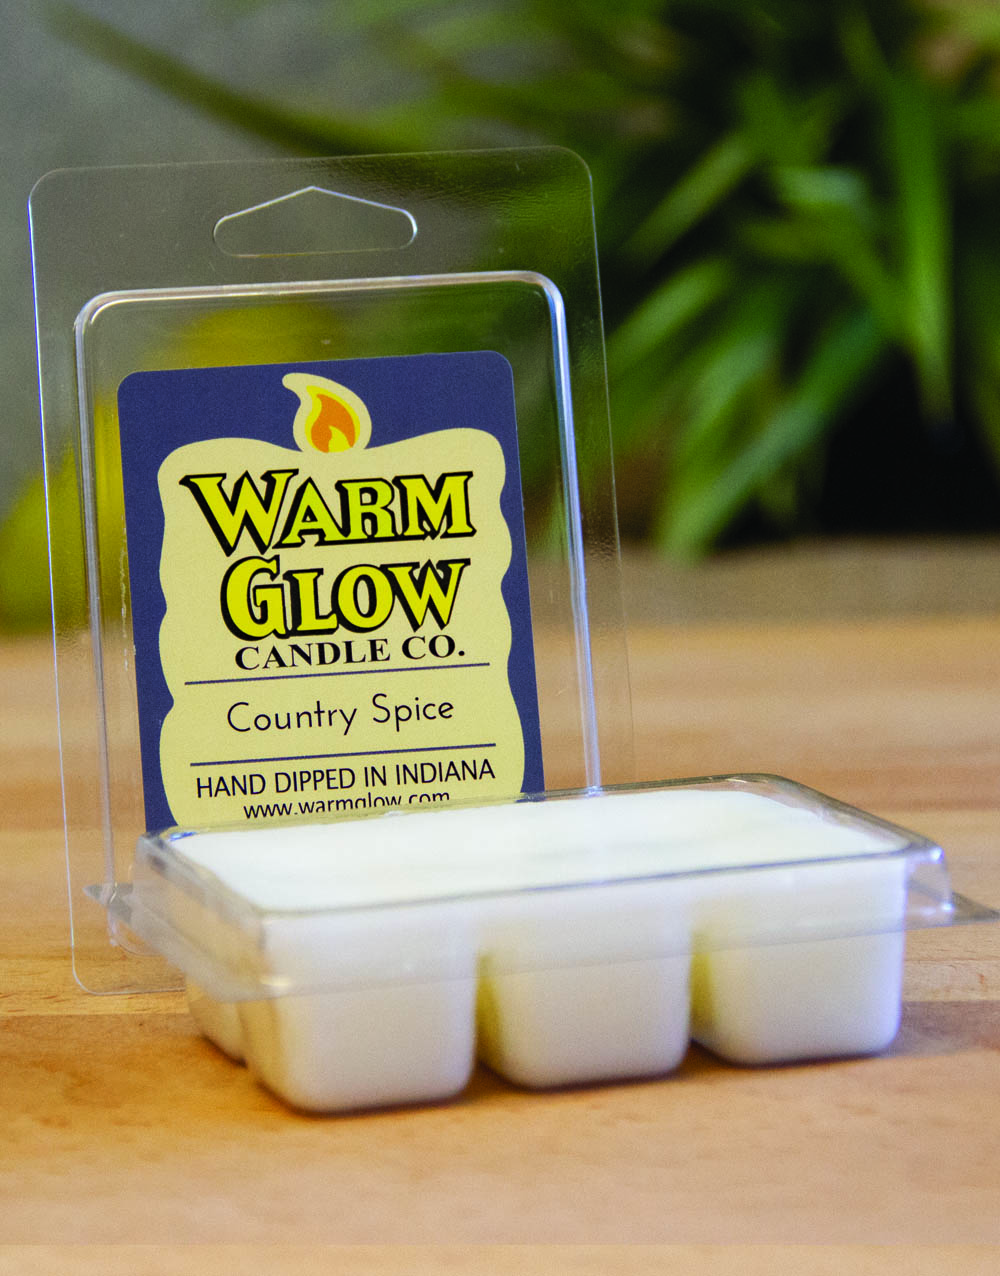 Country-Spice wax melts